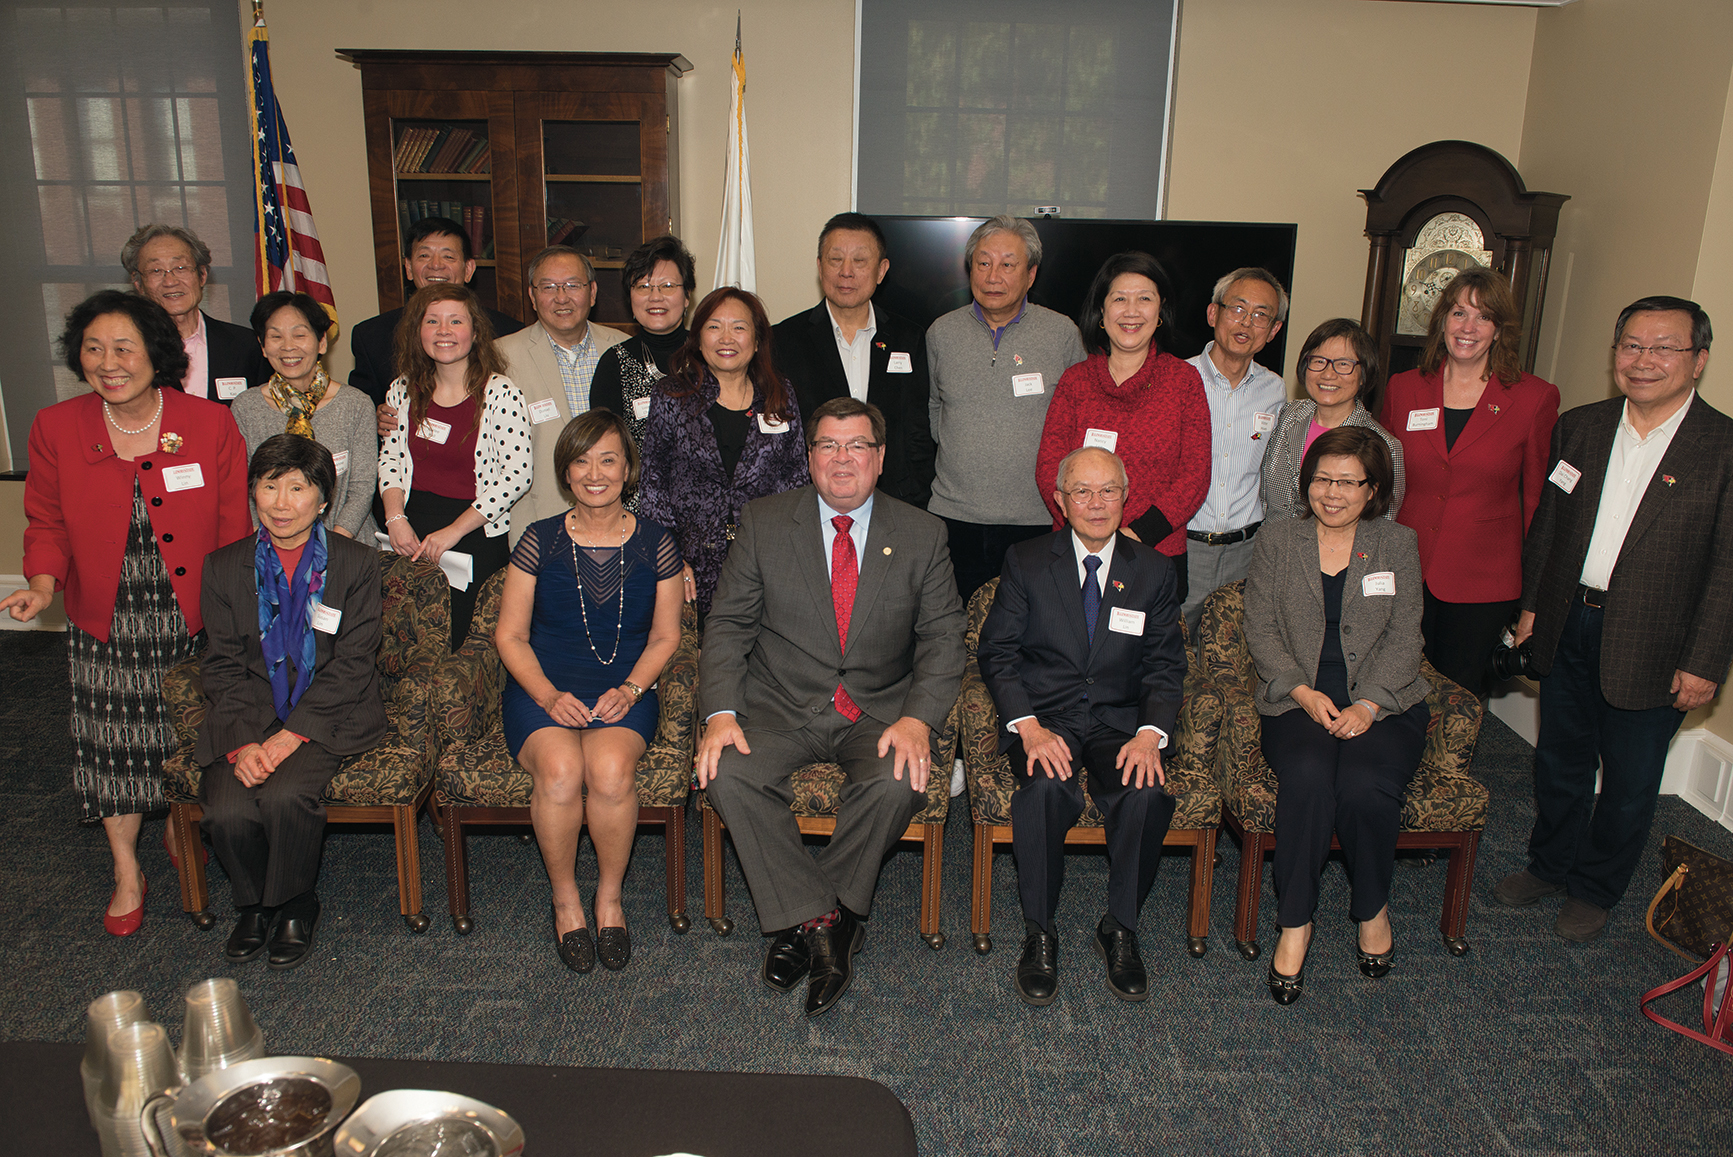 It was a joyful occasion when nearly two dozen alumni from Taiwan had the opportunity to meet with President Larry Dietz last fall. The group posed for a photo with the president in Hovey Hall.